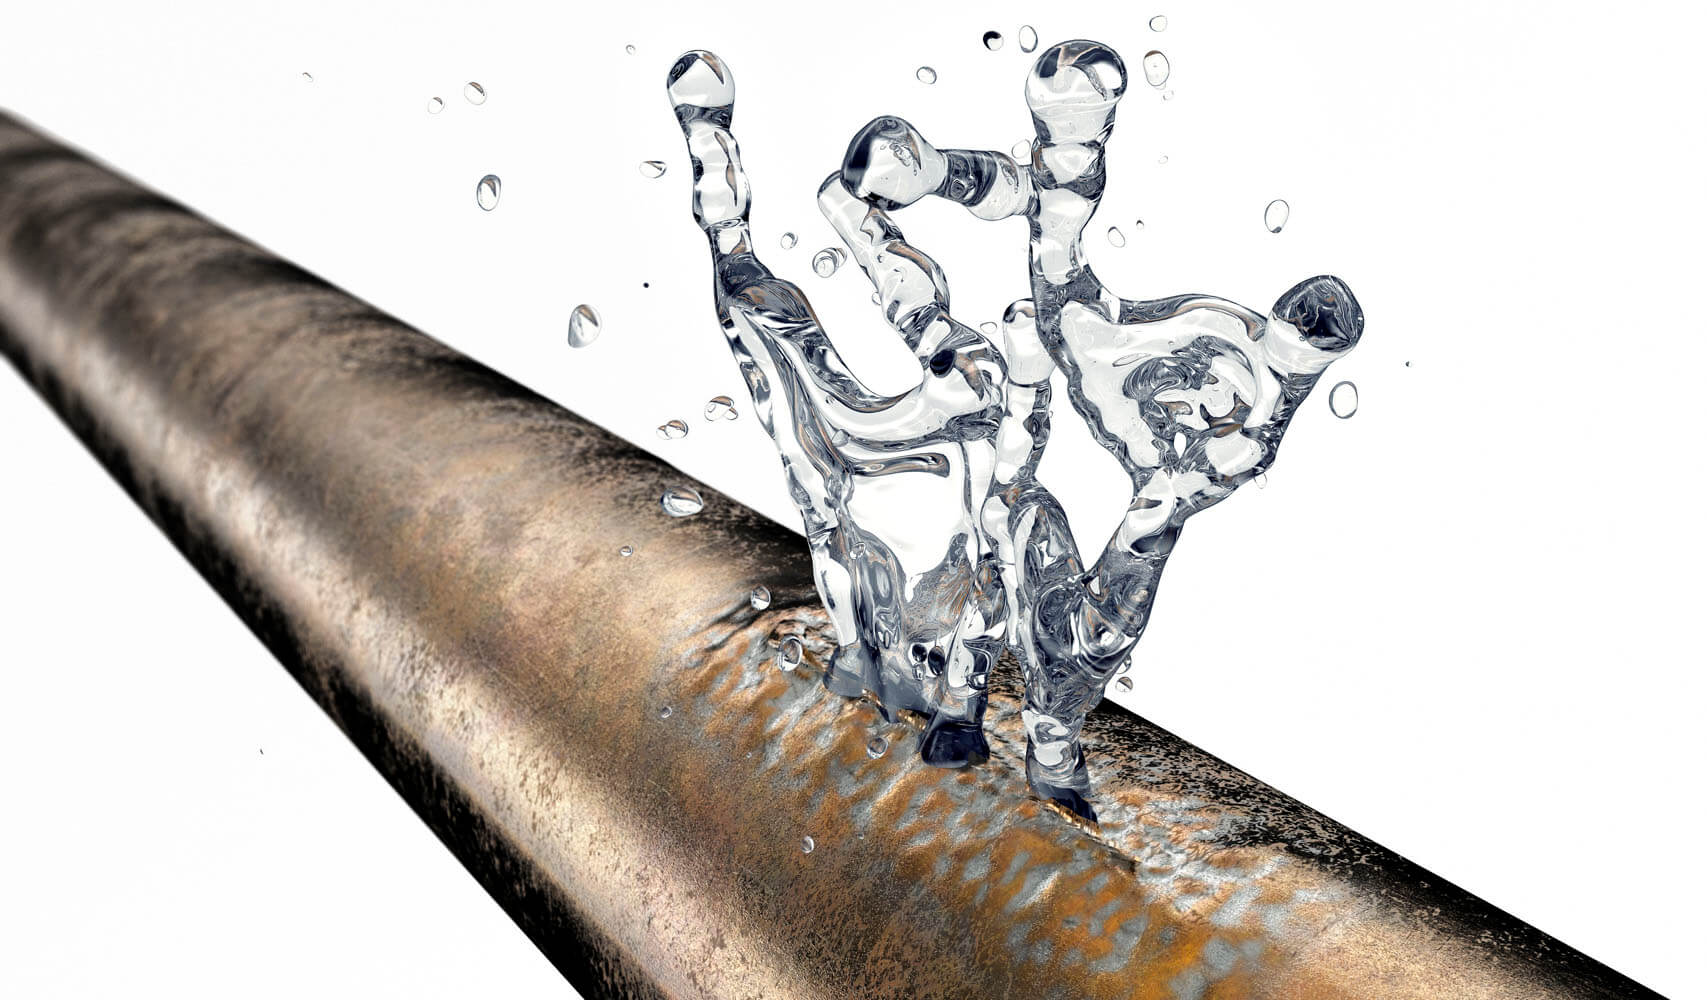 Plumbing Services image